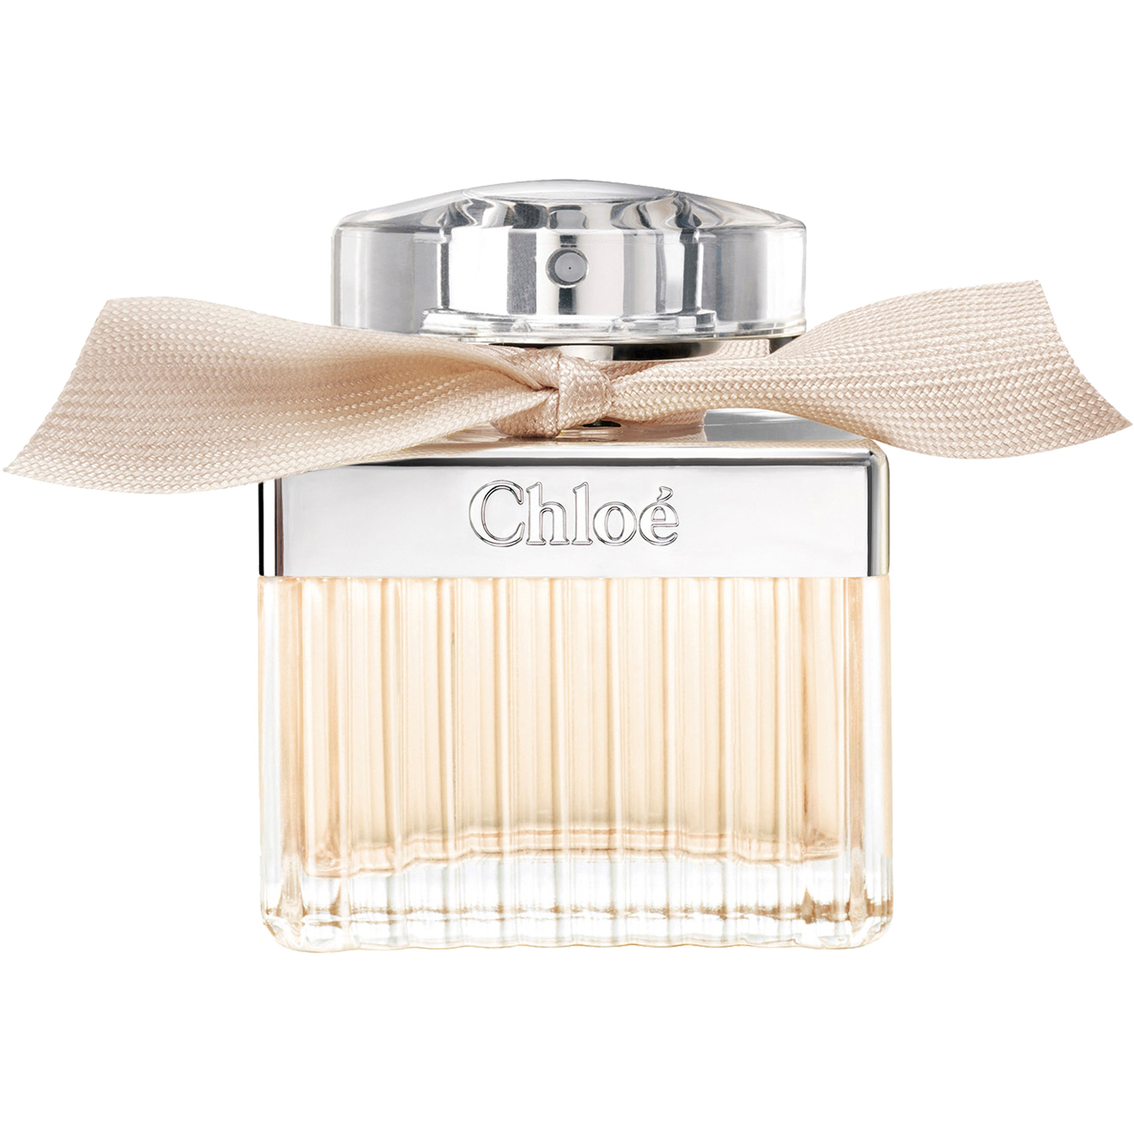 Chloe Eau Chloe Eau De Parfum Spray 1 Oz Women S Fragrances Beauty